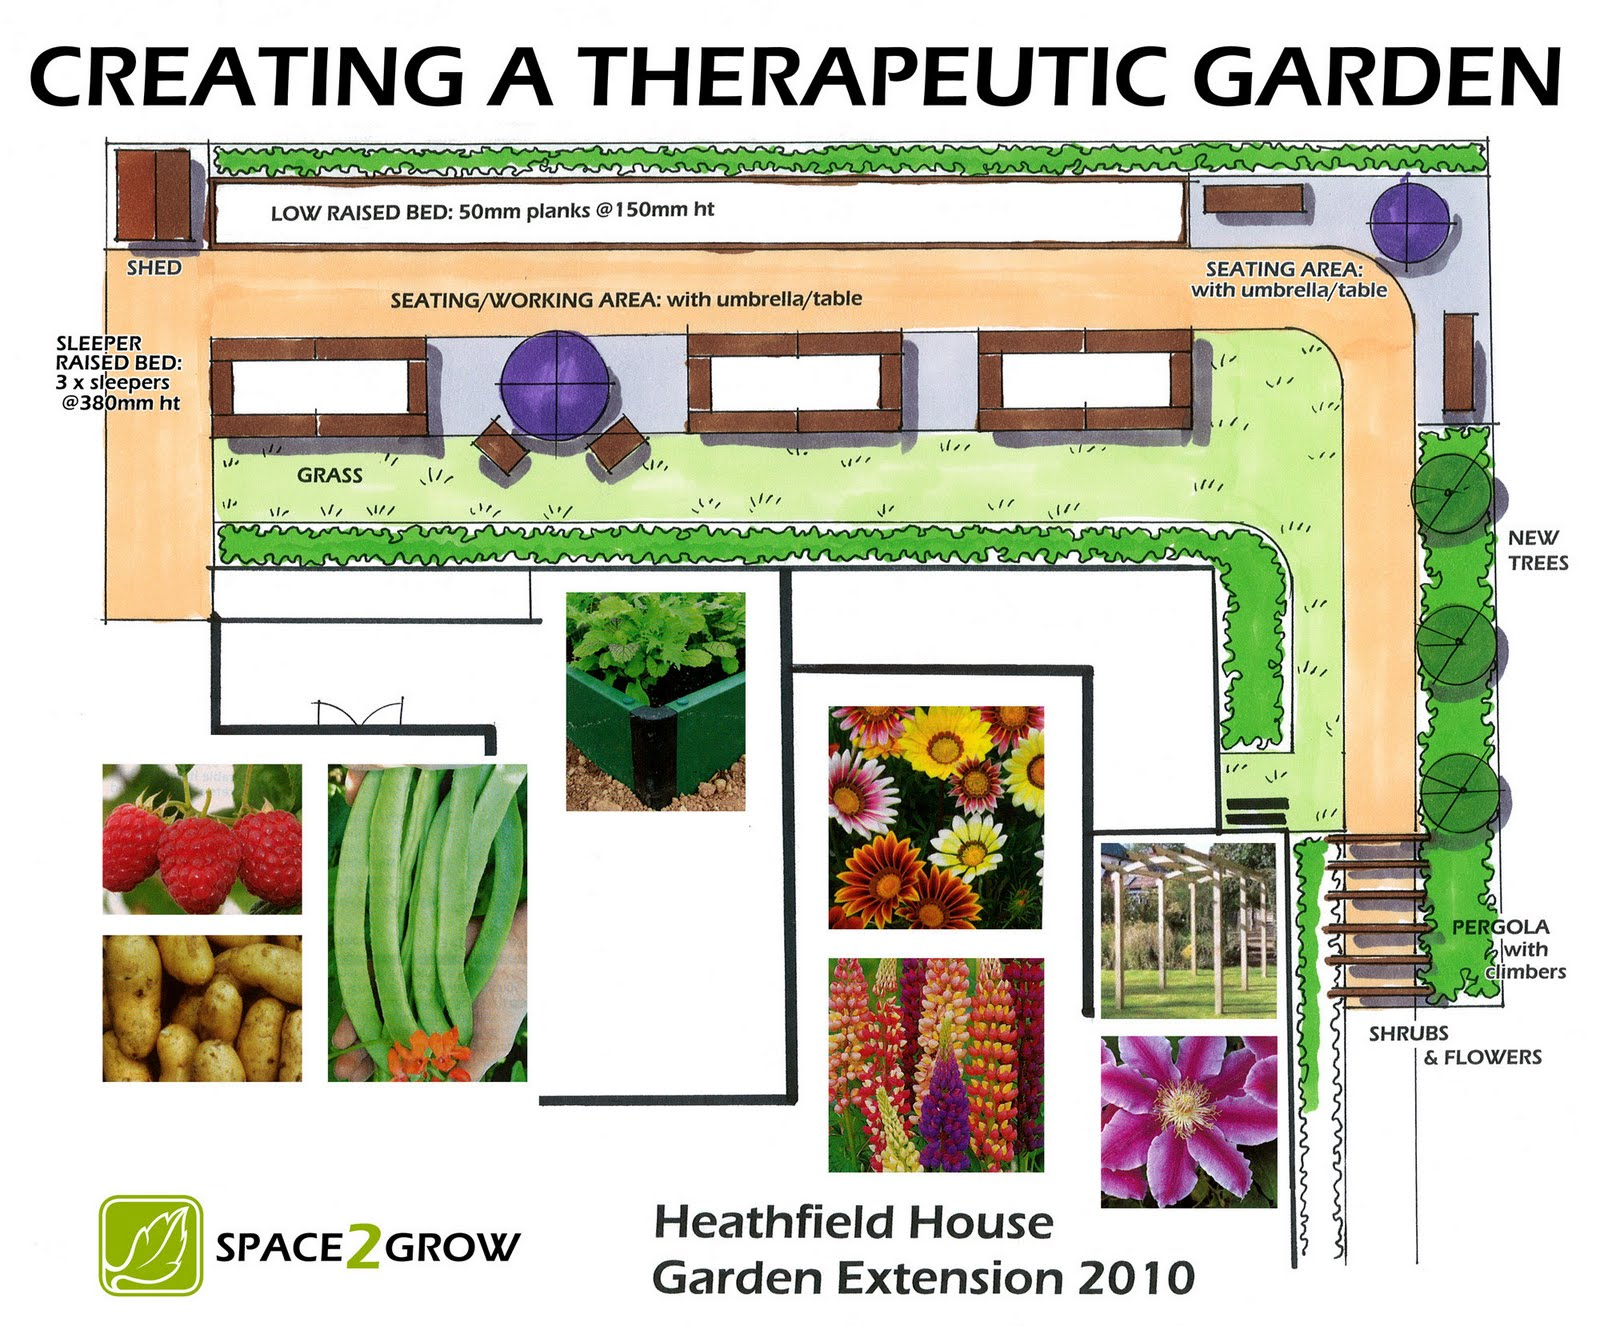 Space2grow heathfield house therapeutic garden plans for House to home garden planner